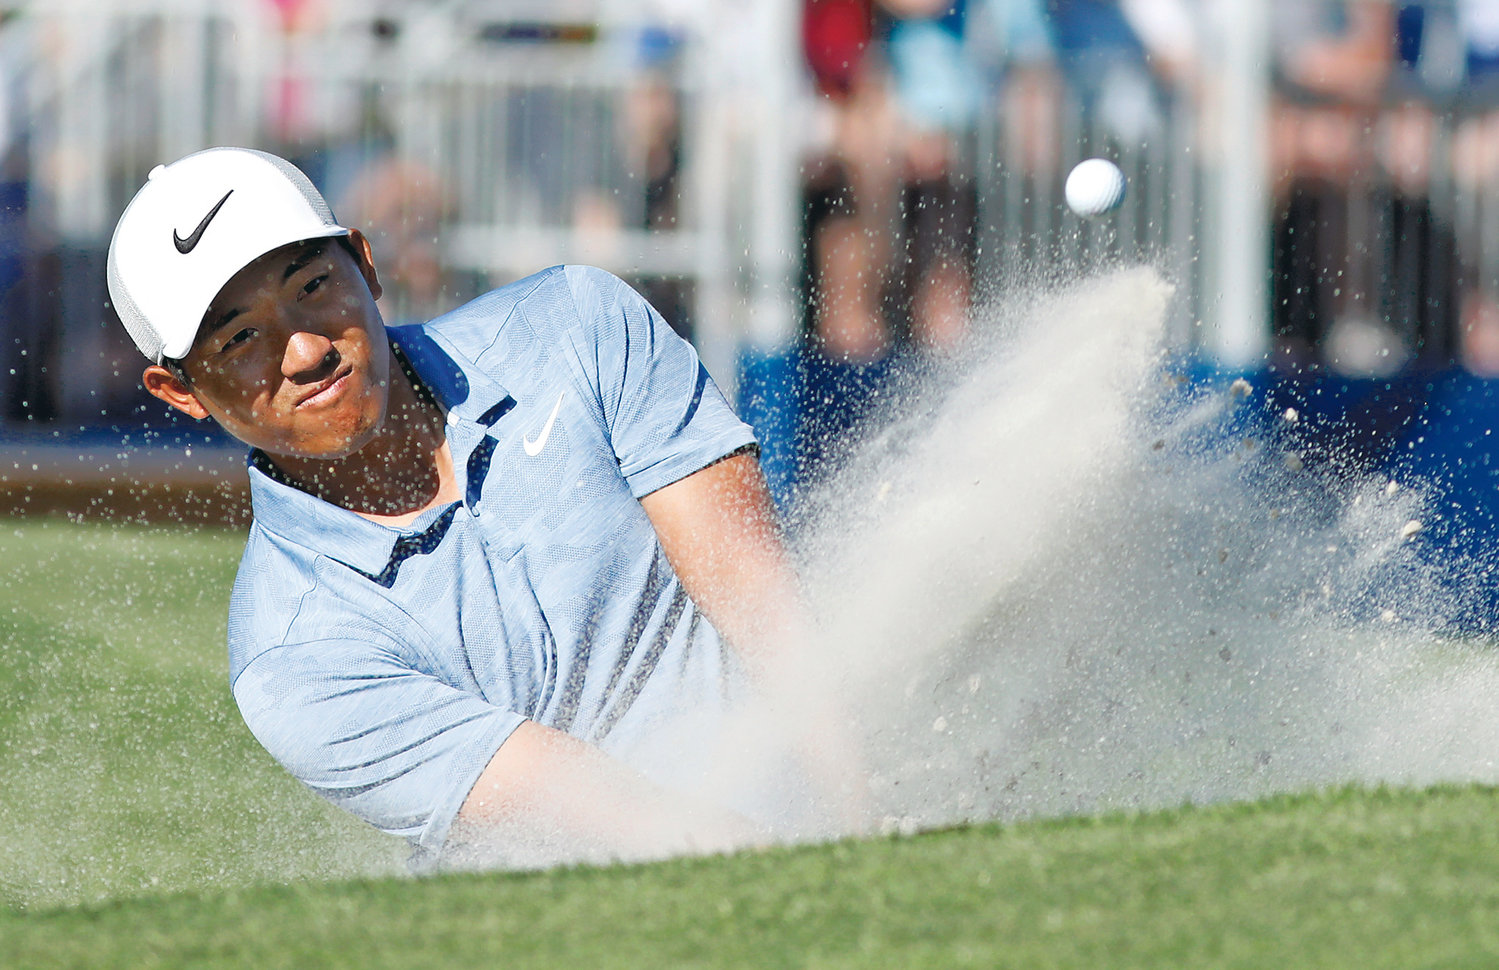 C.T. PAN blast out of a bunker on 17th hole during the final round of the RBC Heritage golf tournament at Harbour Town Golf Links on Hilton Head Island, S.C., Sunday. Pan won with a 12-under par for his first PGA victory.